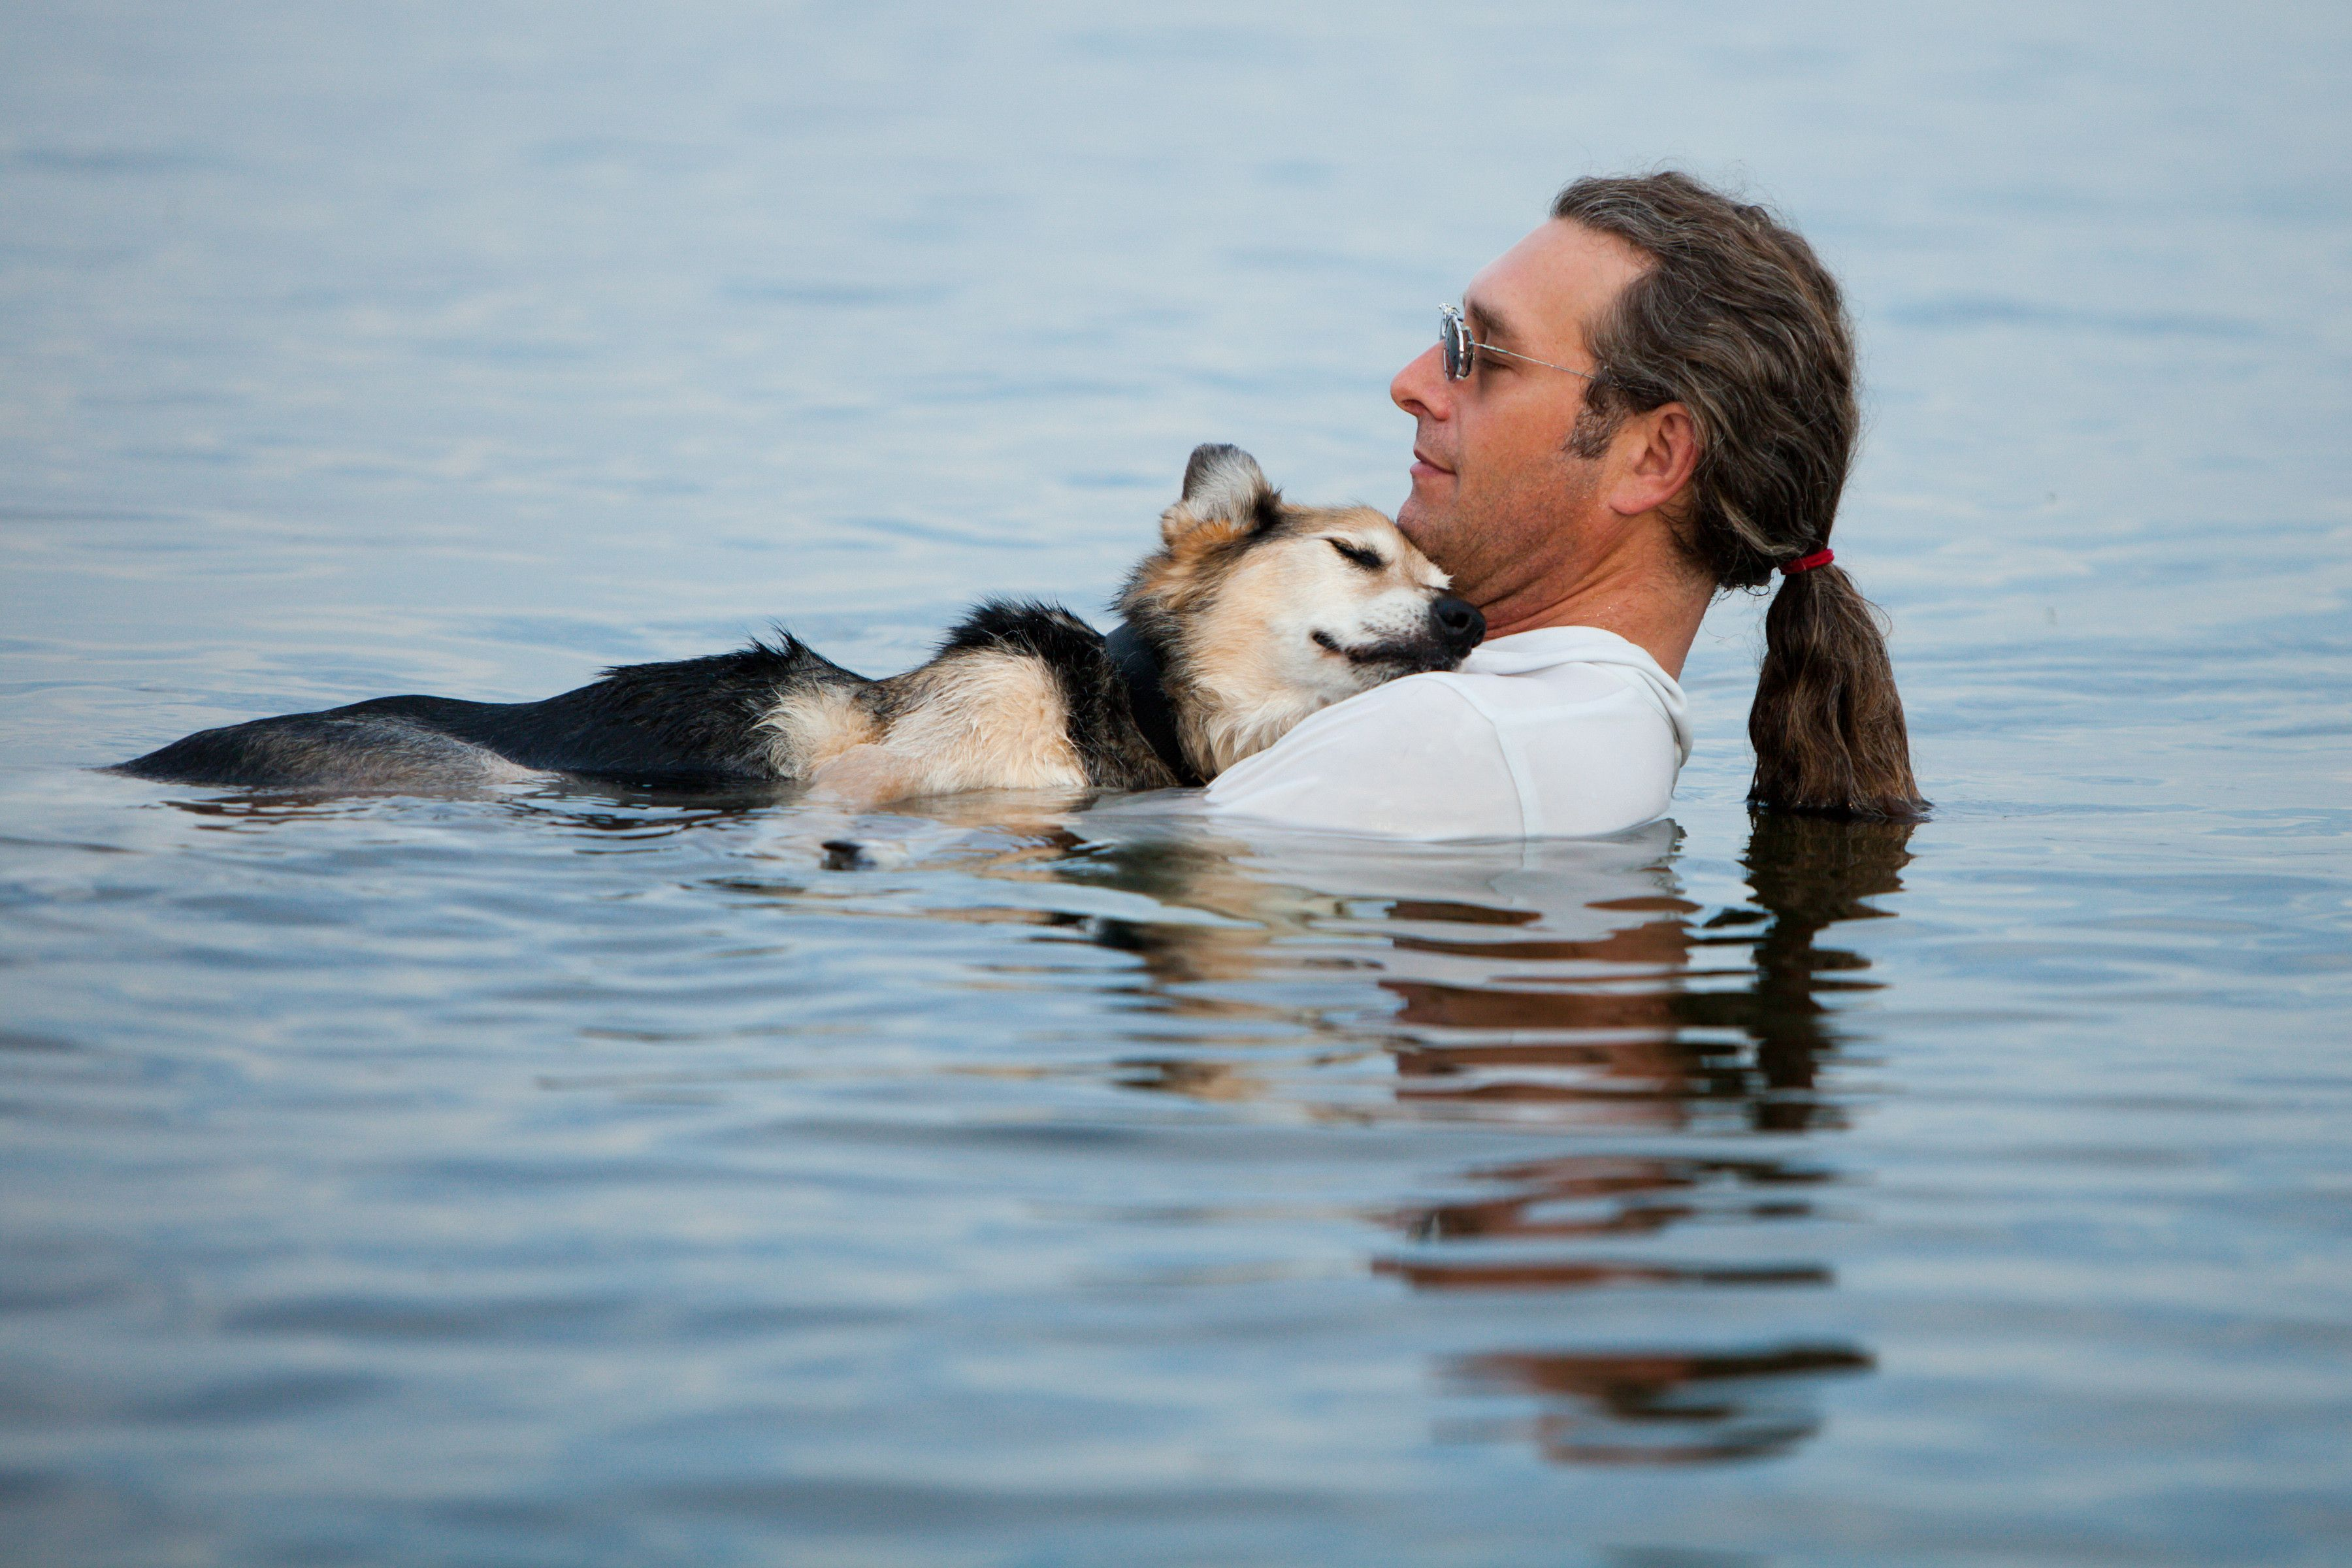 John Unger cradling his dog Schoep, in Lake Superior.  Schoep is 19 and has arthritis that prevents him from sleeping.  John carries Schoep to Lake Superior and cradles him in his arms until Schoep falls asleep. John credits Schoep for saving his life and now John does all he can for Schoep.    I could cry.  this story was so touching.